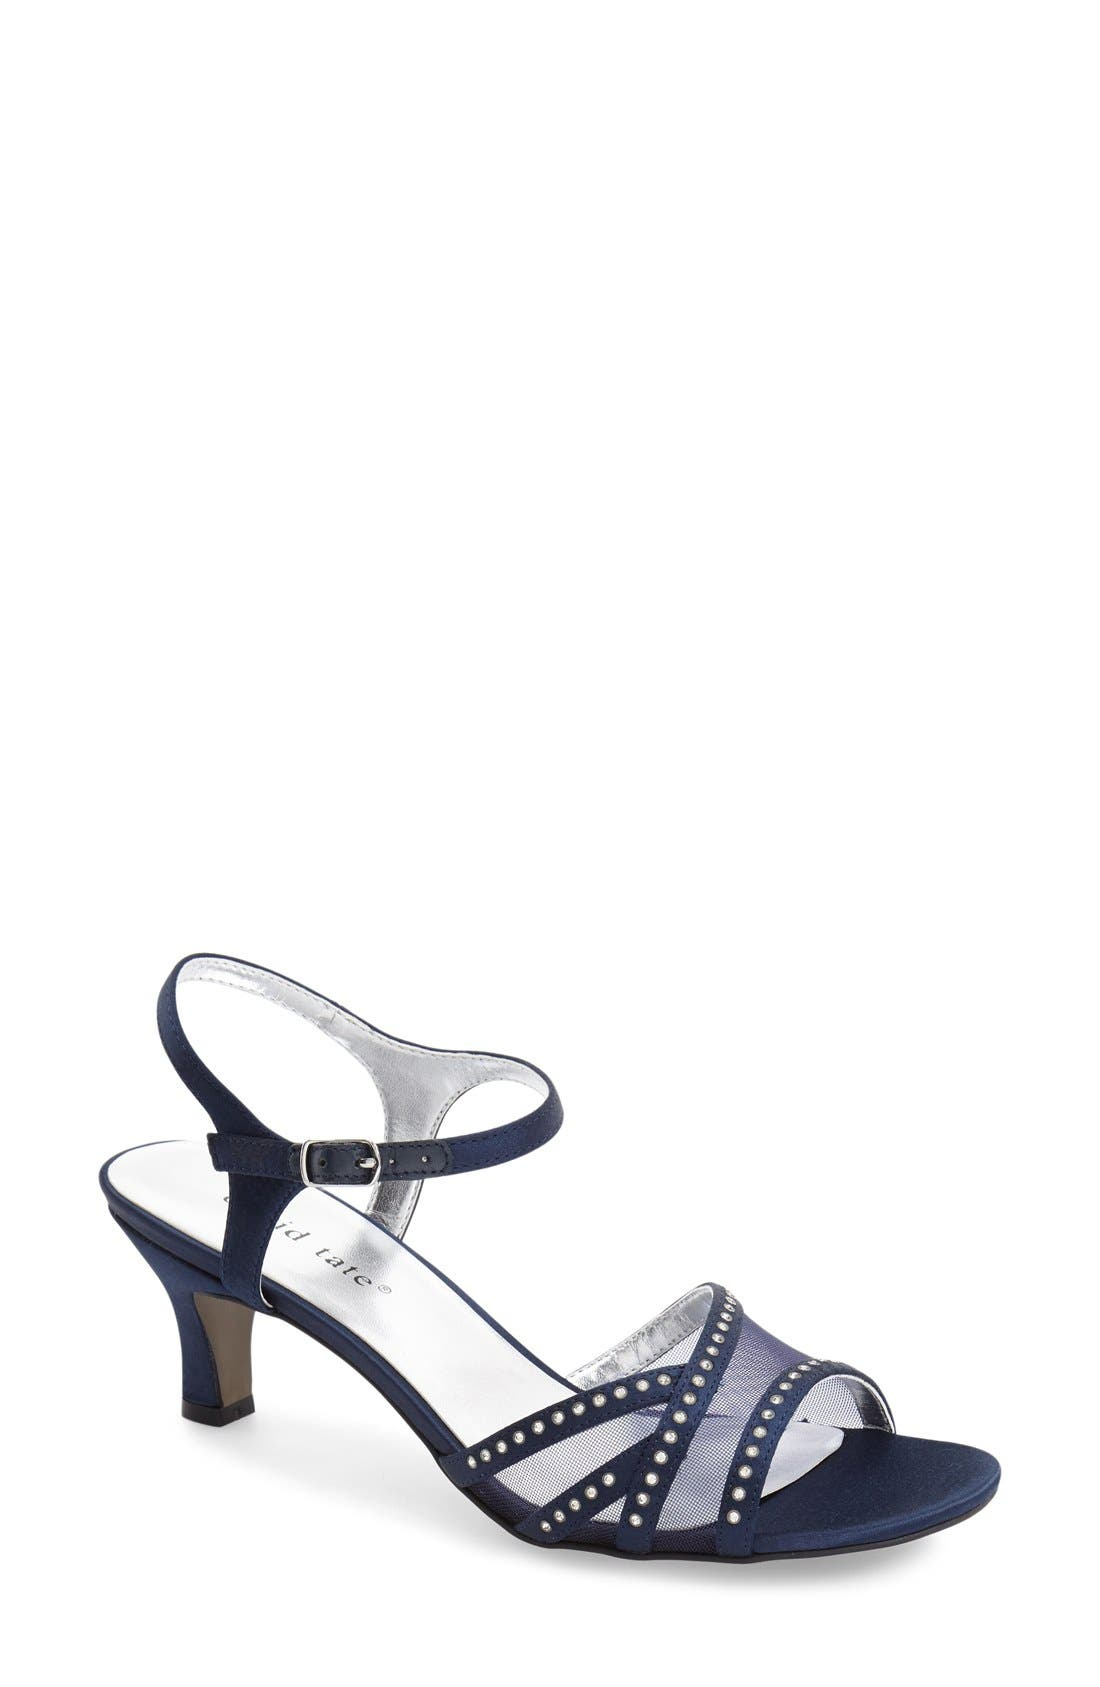 'Violet - Night Out' Sandal,                         Main,                         color, Navy Satin